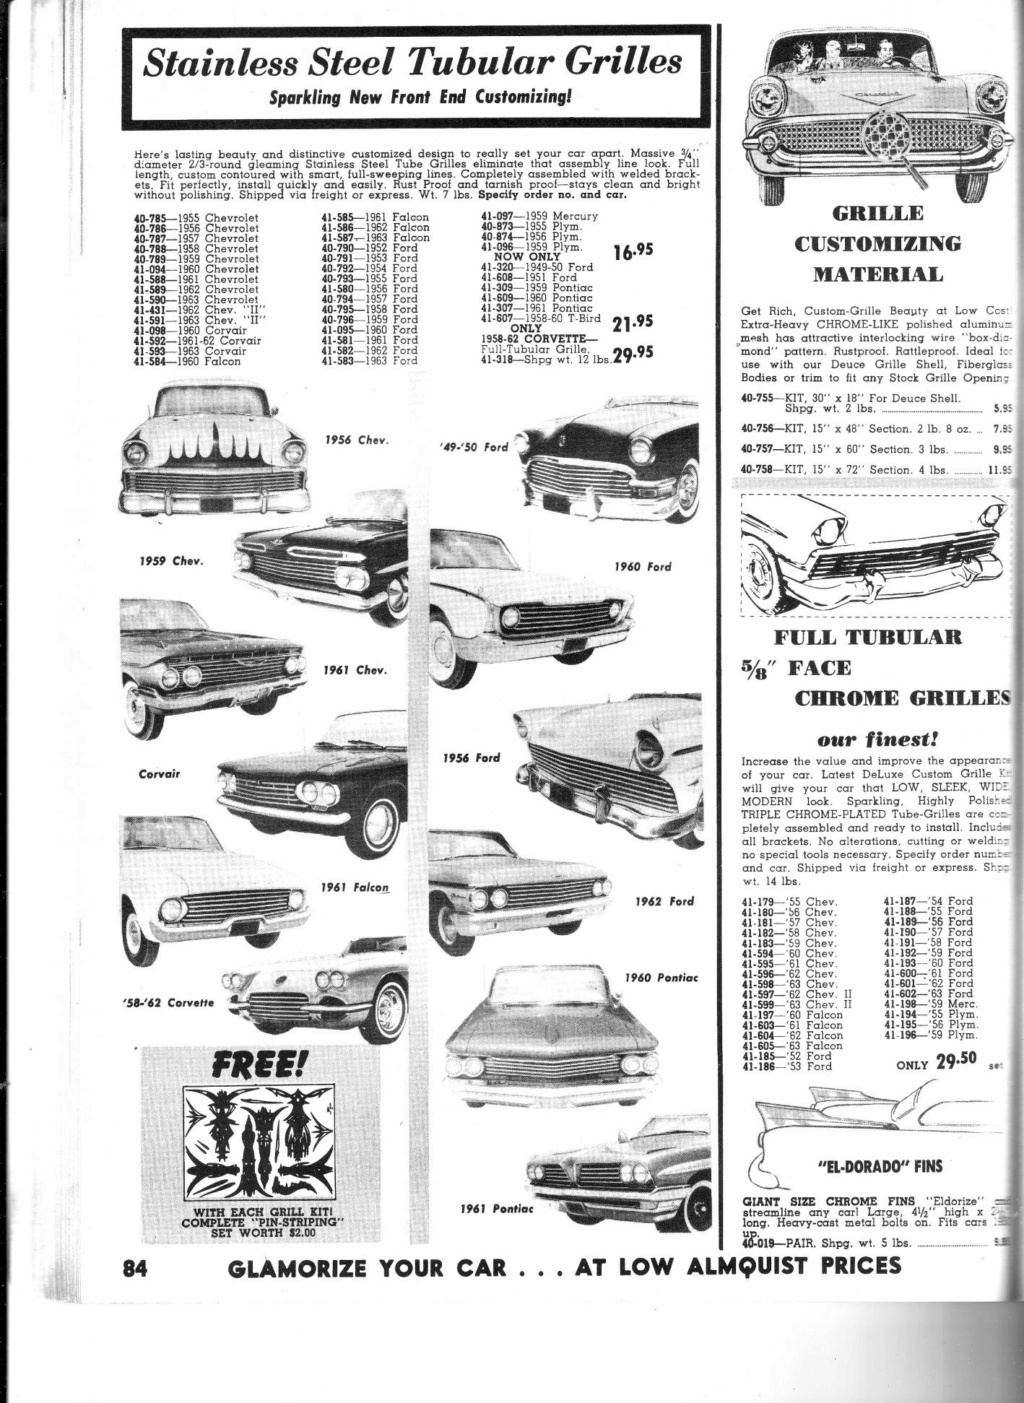 Almquist catalog, Speed, Mileage, Customizing, Performance - World's largest supplier of hi-performance equipement -  1963 Img_0015